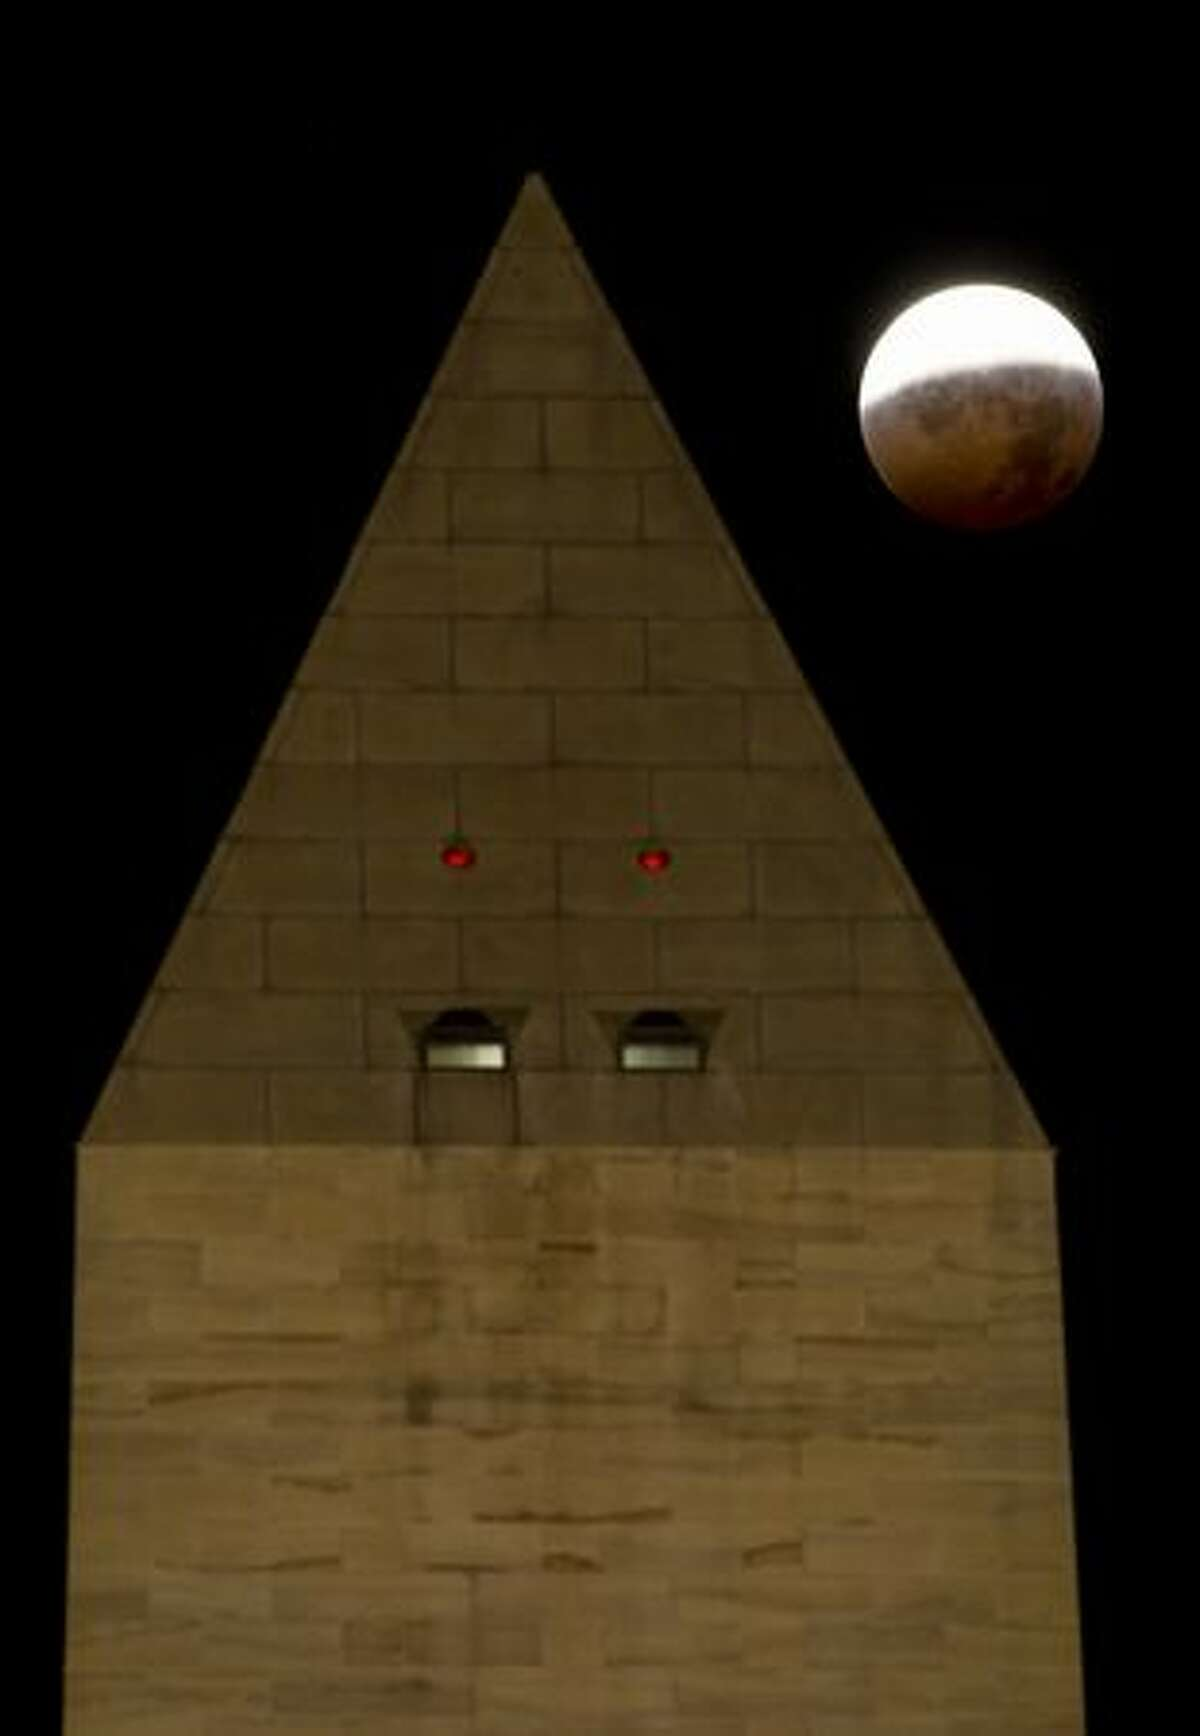 WIn this handout photo provided by NASA, A total lunar eclipse is seen behind the Washington Monument as the full moon is shadowed by the Earth on the arrival of the winter solstice, on Tuesday in Washington, DC. It is the first lunar eclipse that has coincided with the Winter Solstice, the shortest day of the year, since 1638.